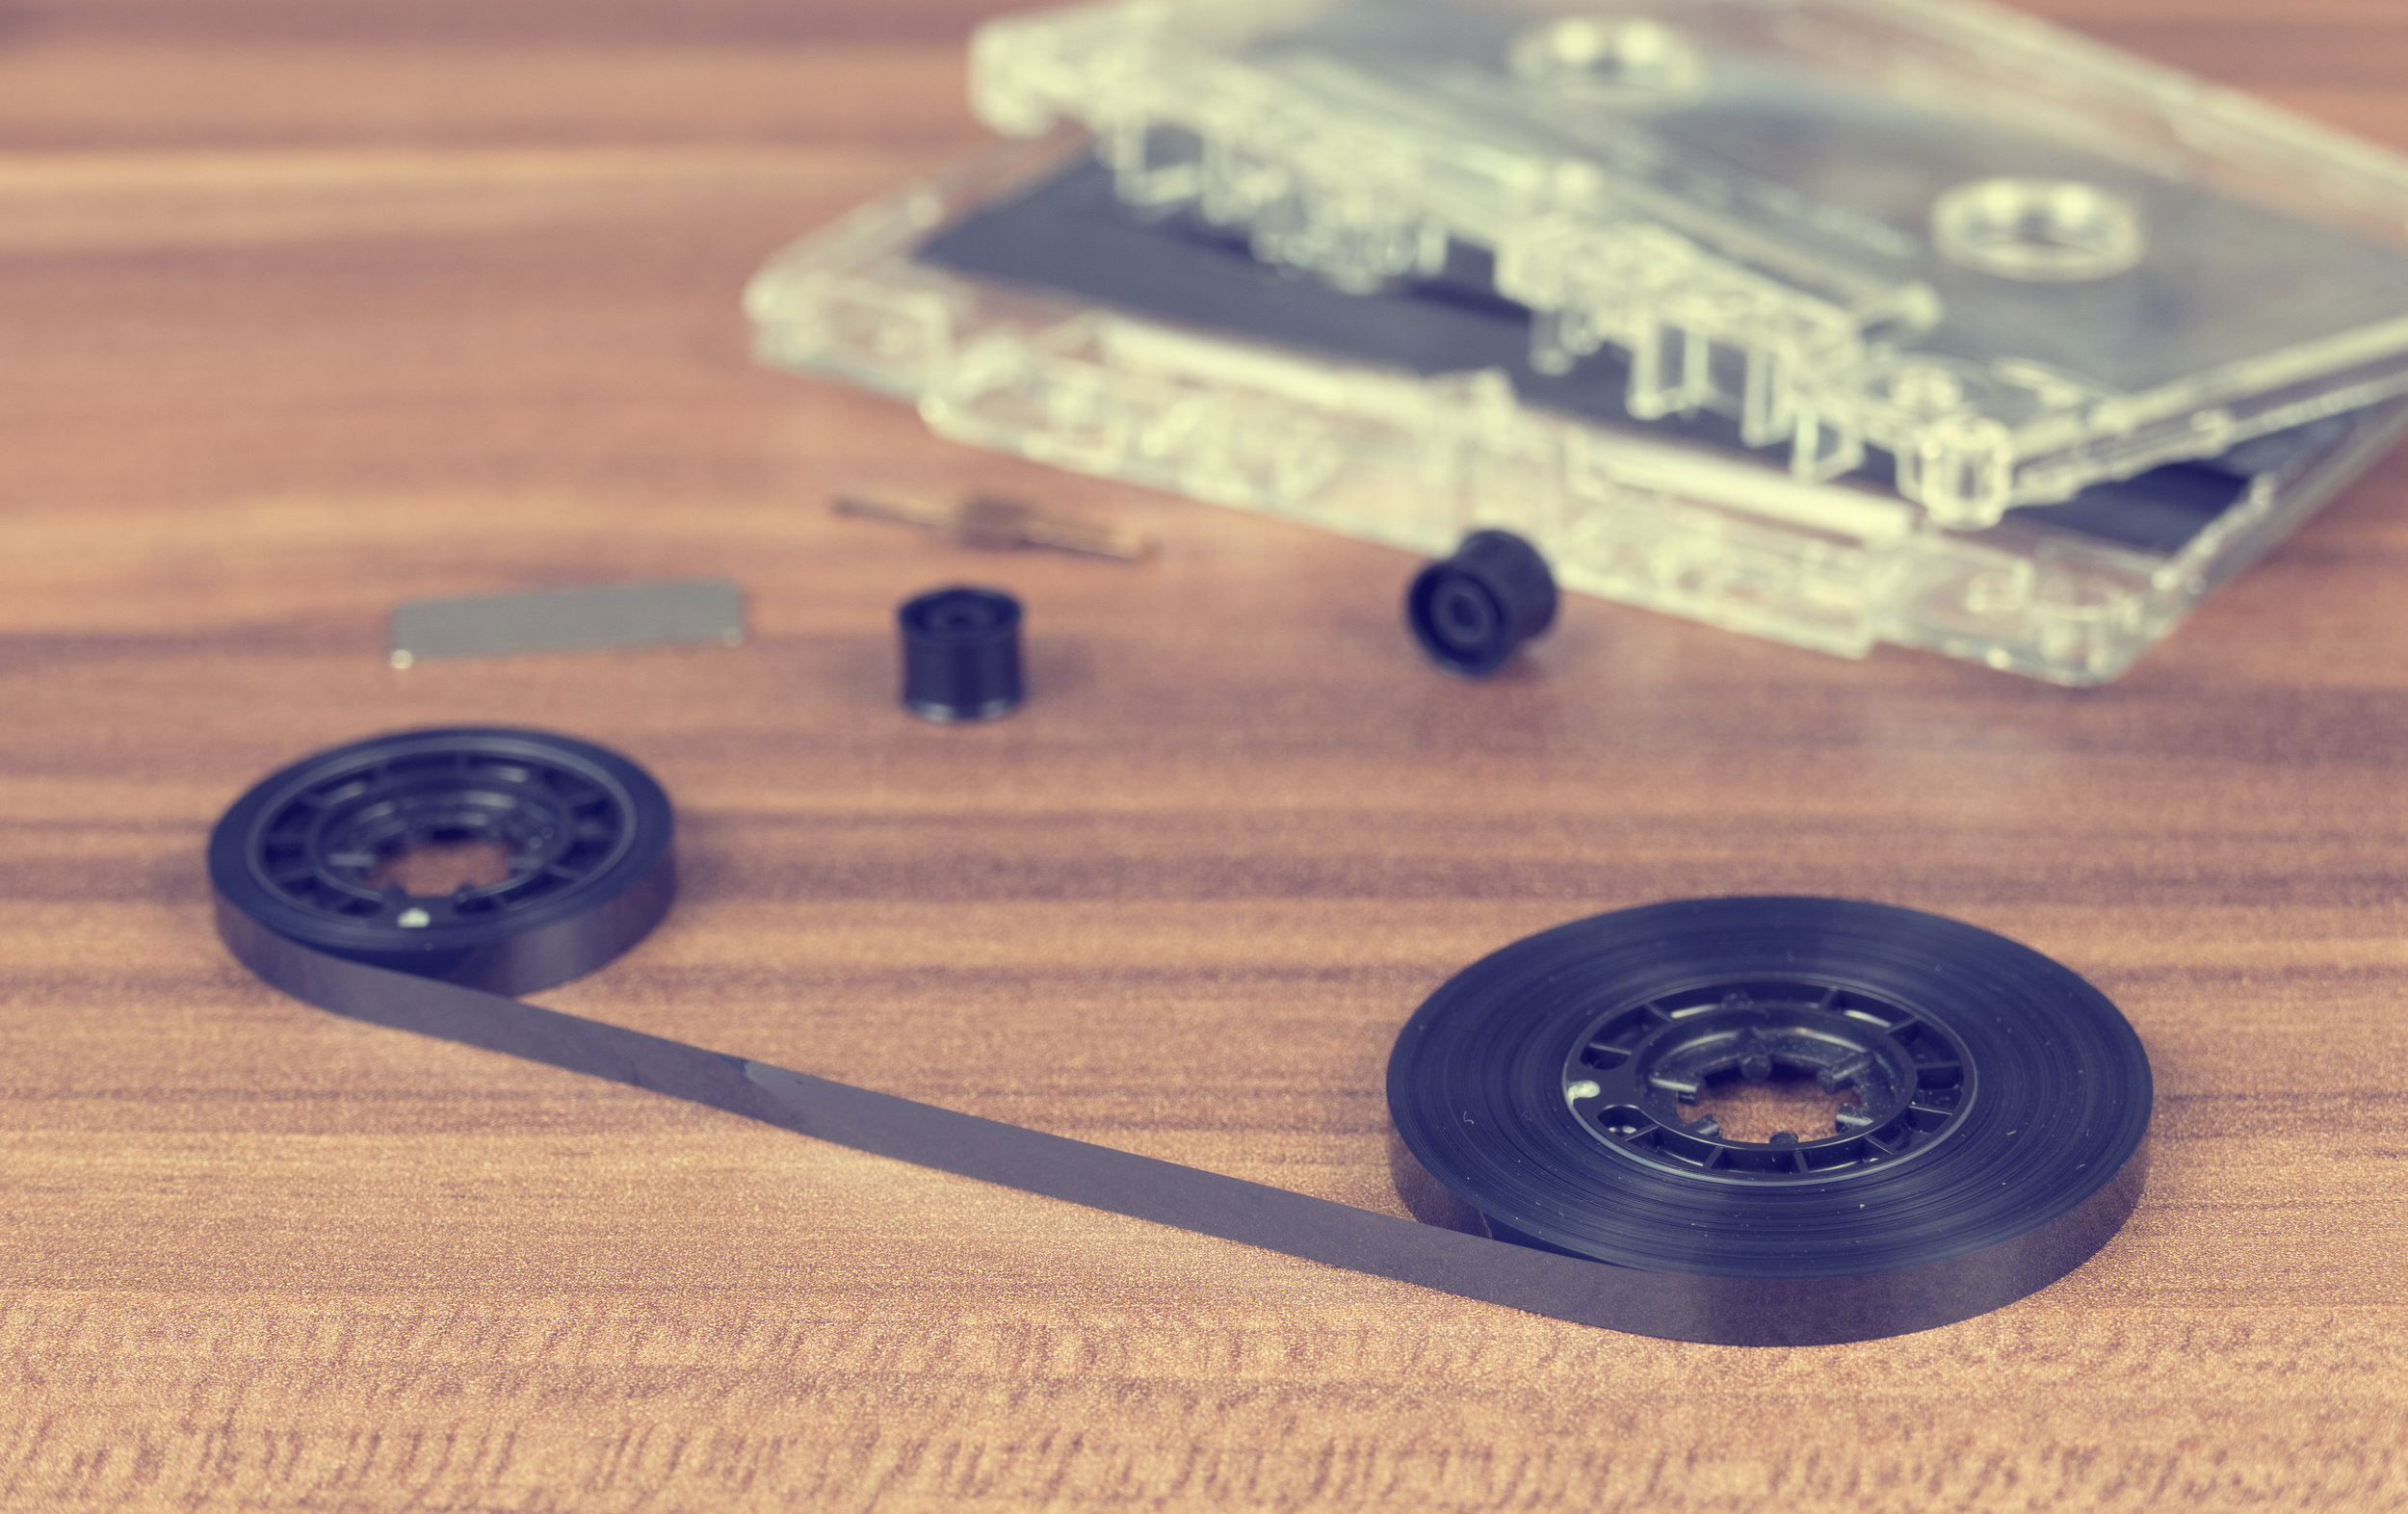 Cassette tape - accompanies article about album promotion